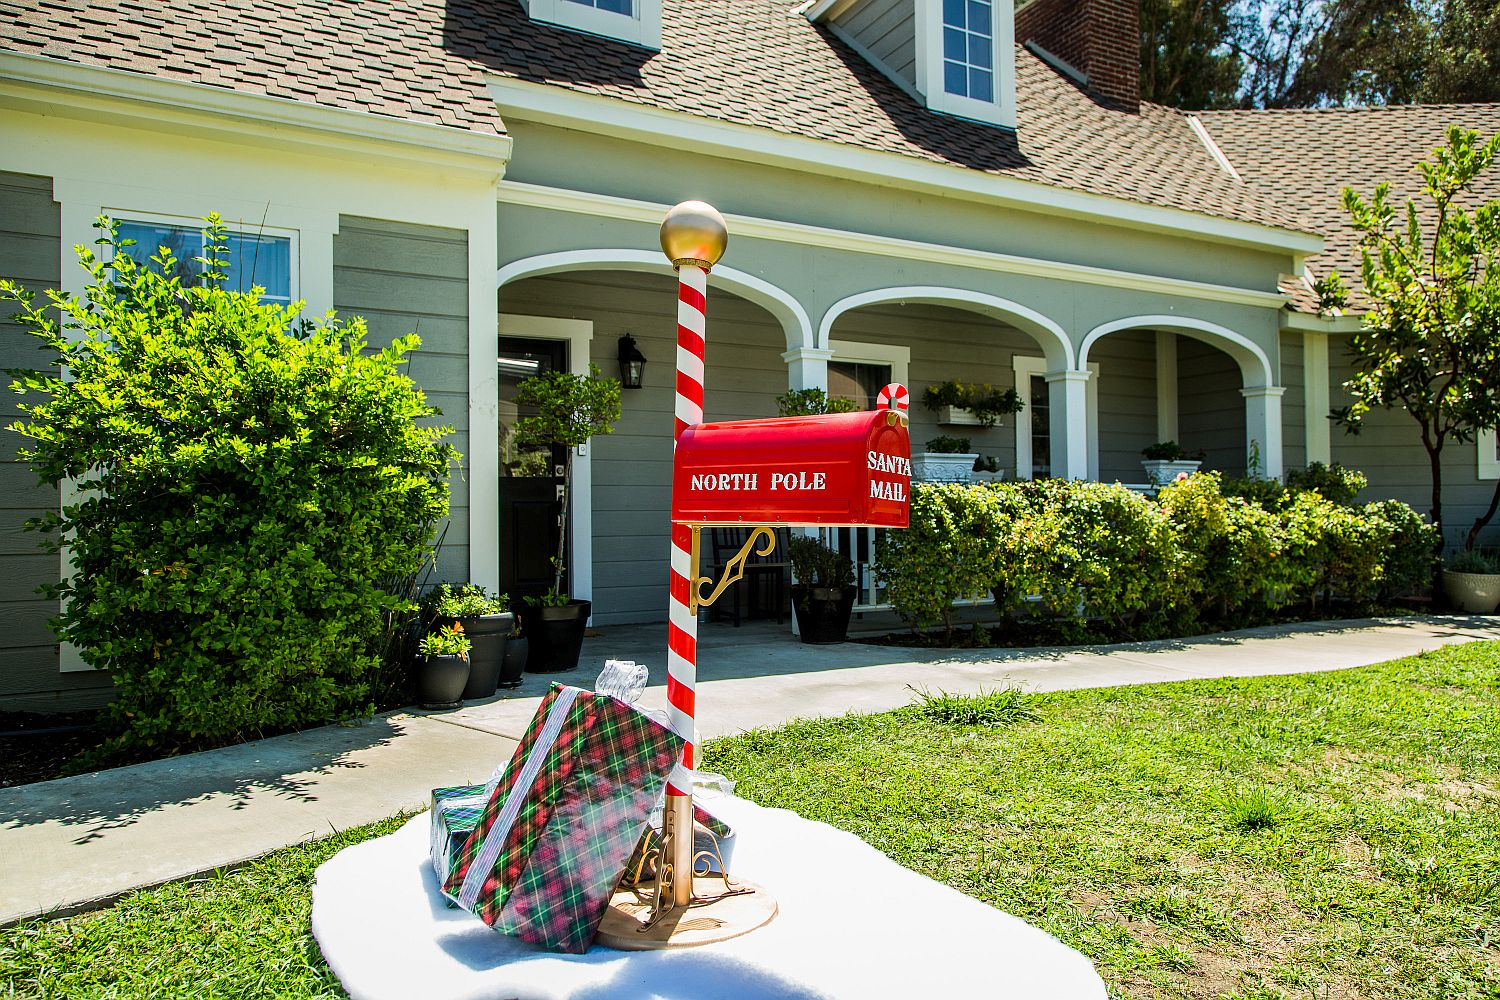 10 unique diy mailbox ideas from the festive to the chic - Unique mailbox ideas for your home ...